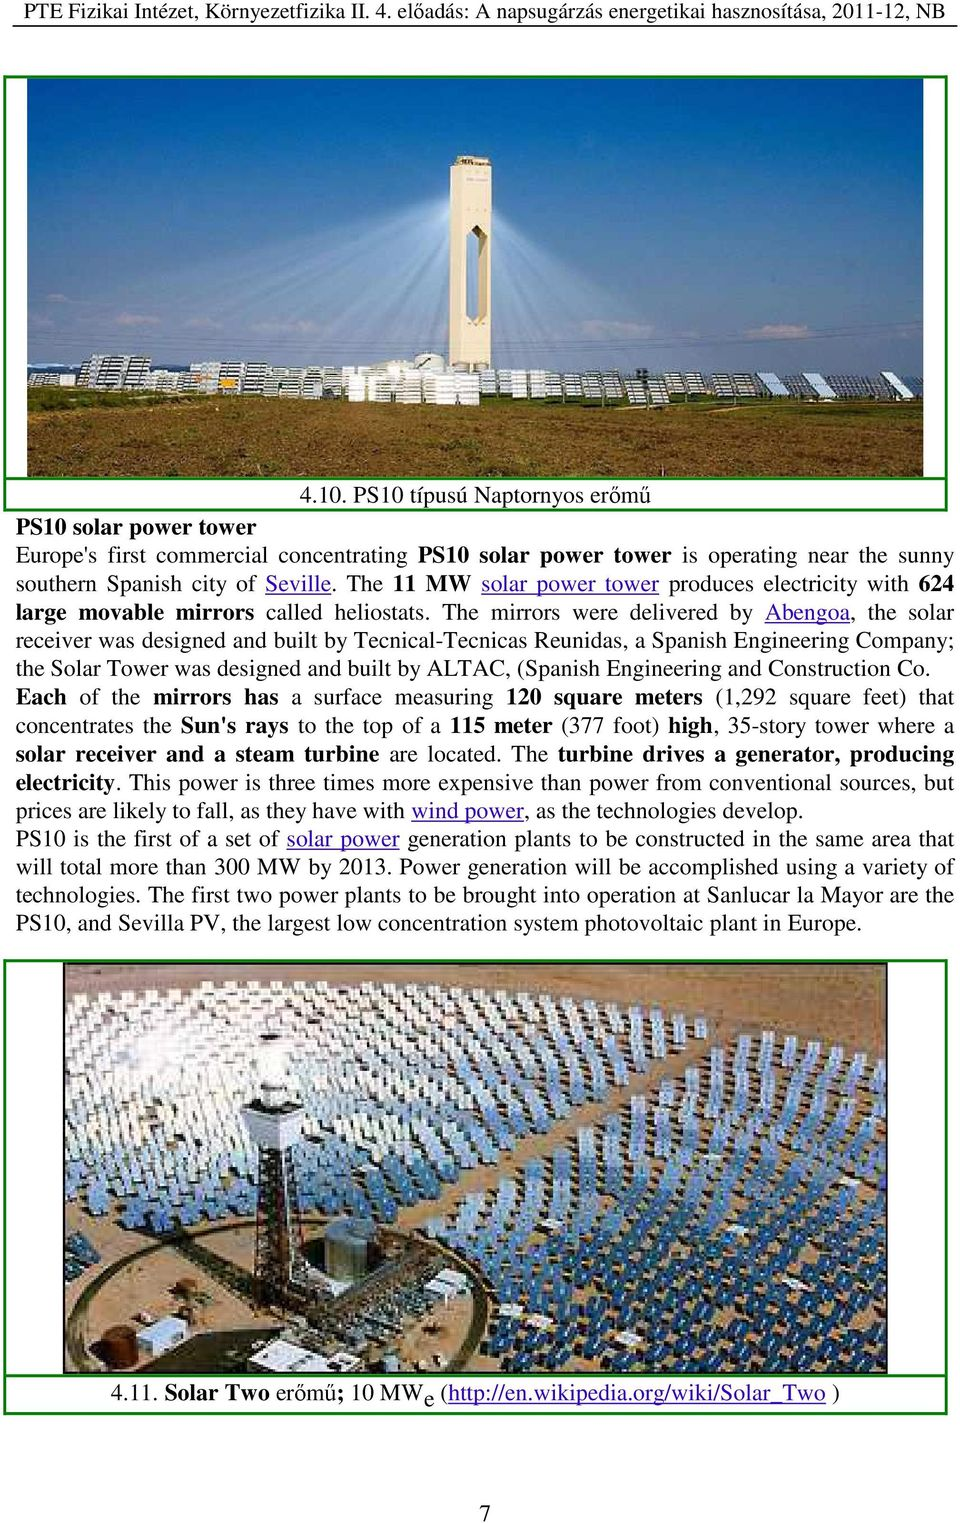 The mirrors were delivered by Abengoa, the solar receiver was designed and built by Tecnical-Tecnicas Reunidas, a Spanish Engineering Company; the Solar Tower was designed and built by ALTAC,